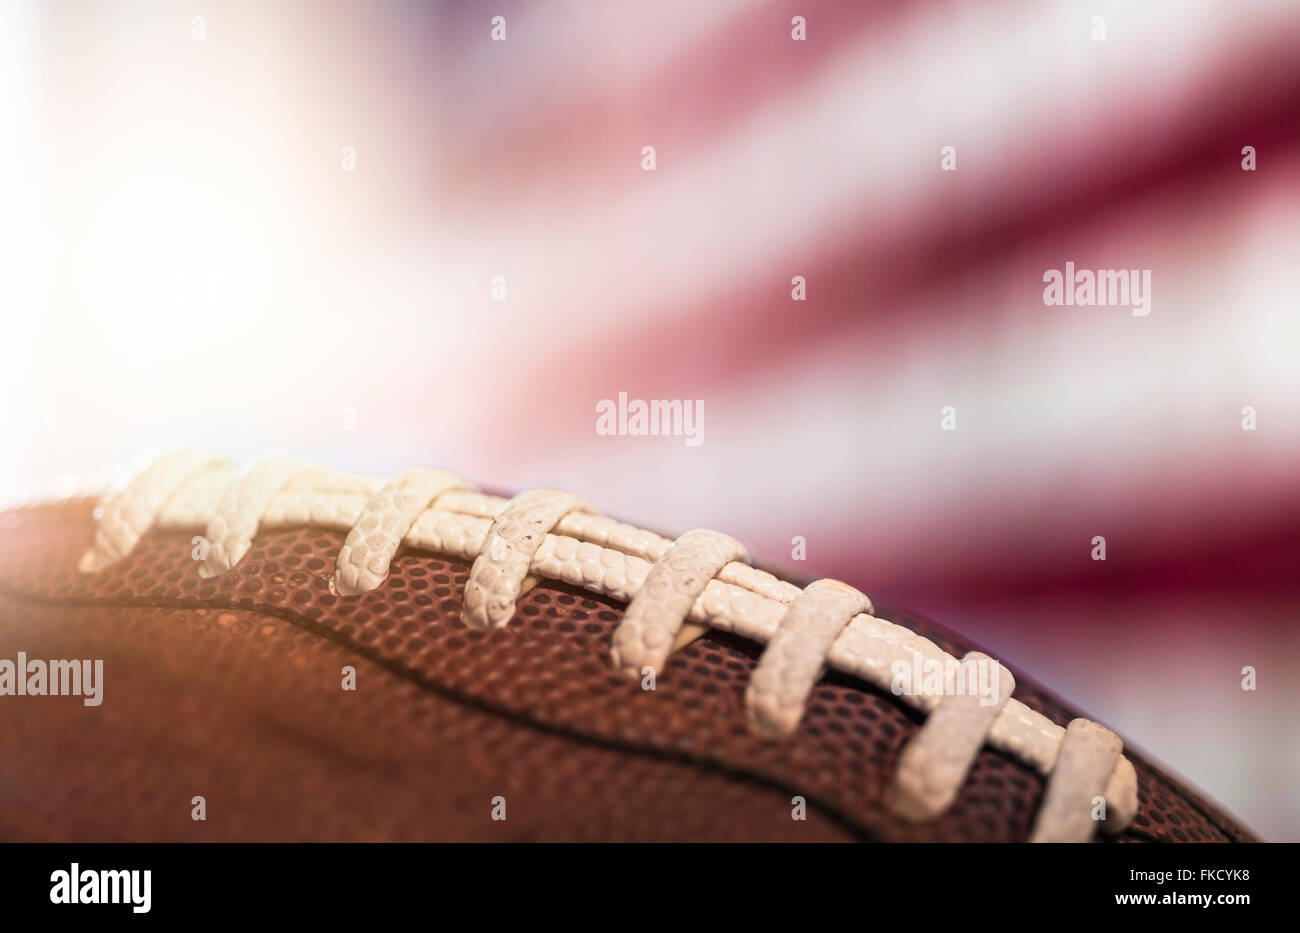 Close-up of American football - Stock Image